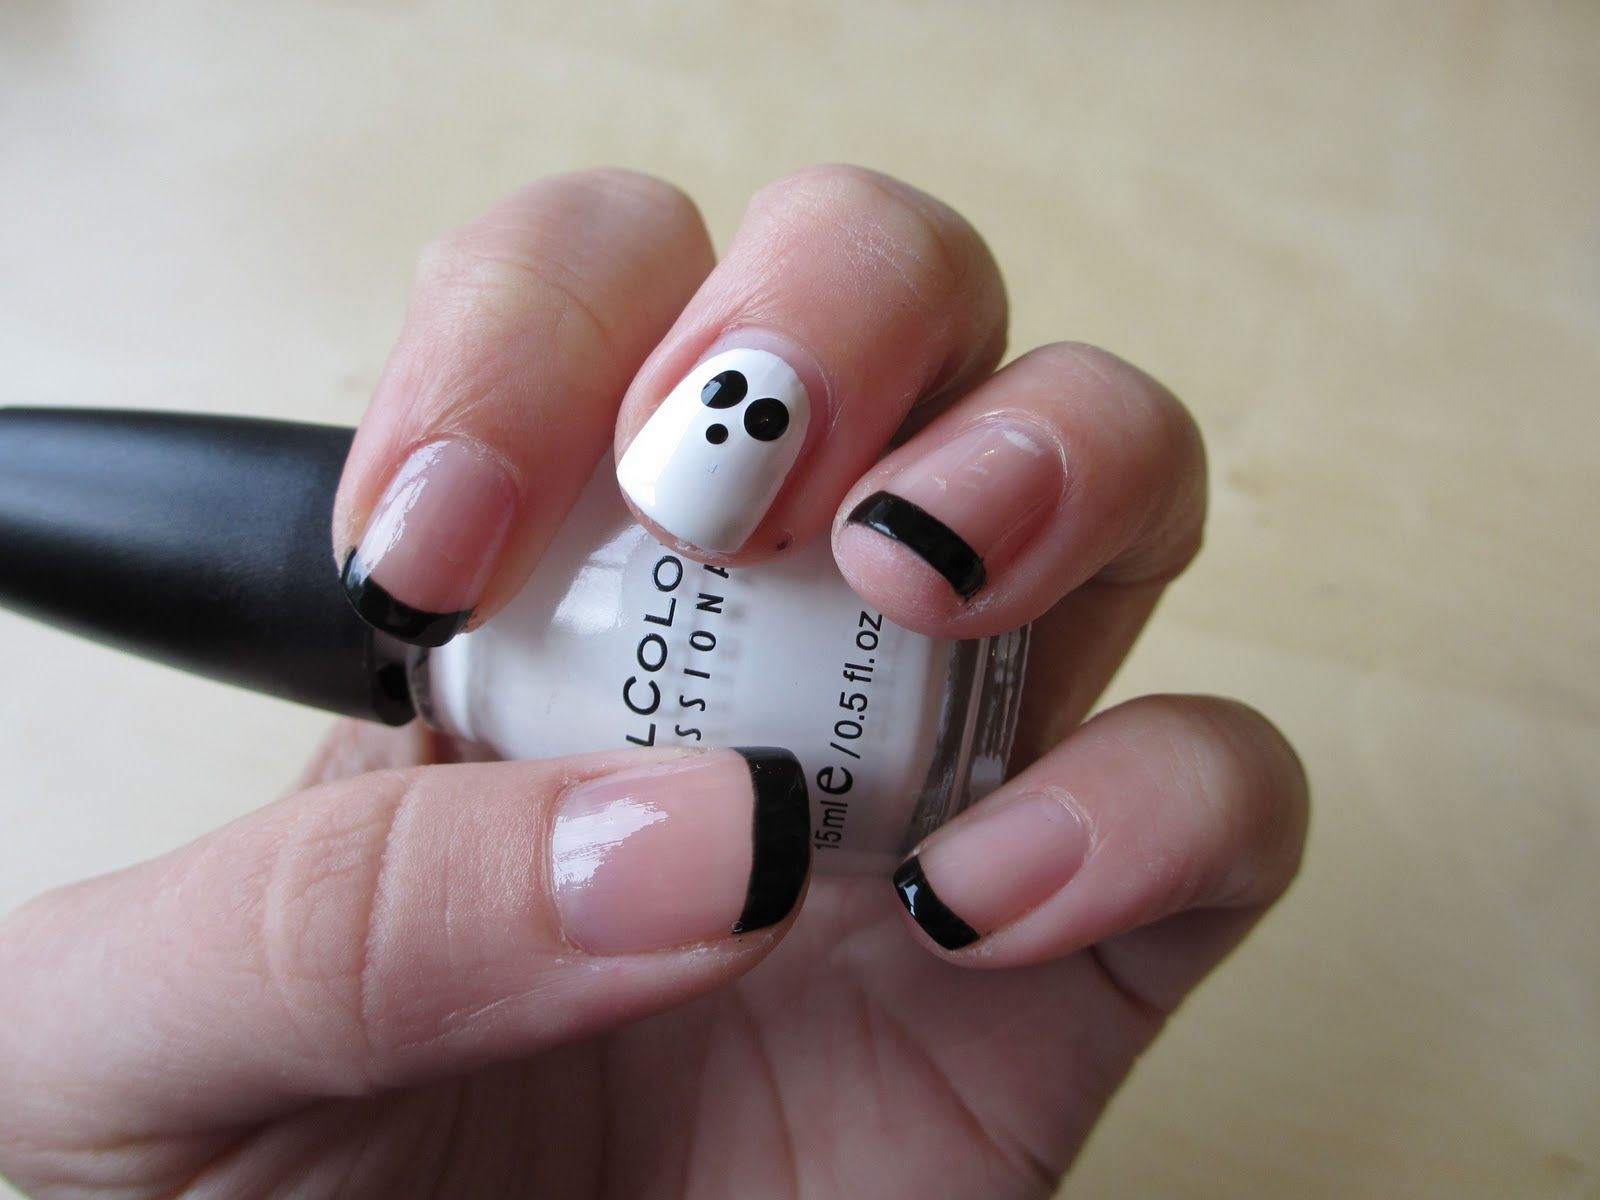 Ghost Nail Designs Plain Nails With Black Tips And Single White